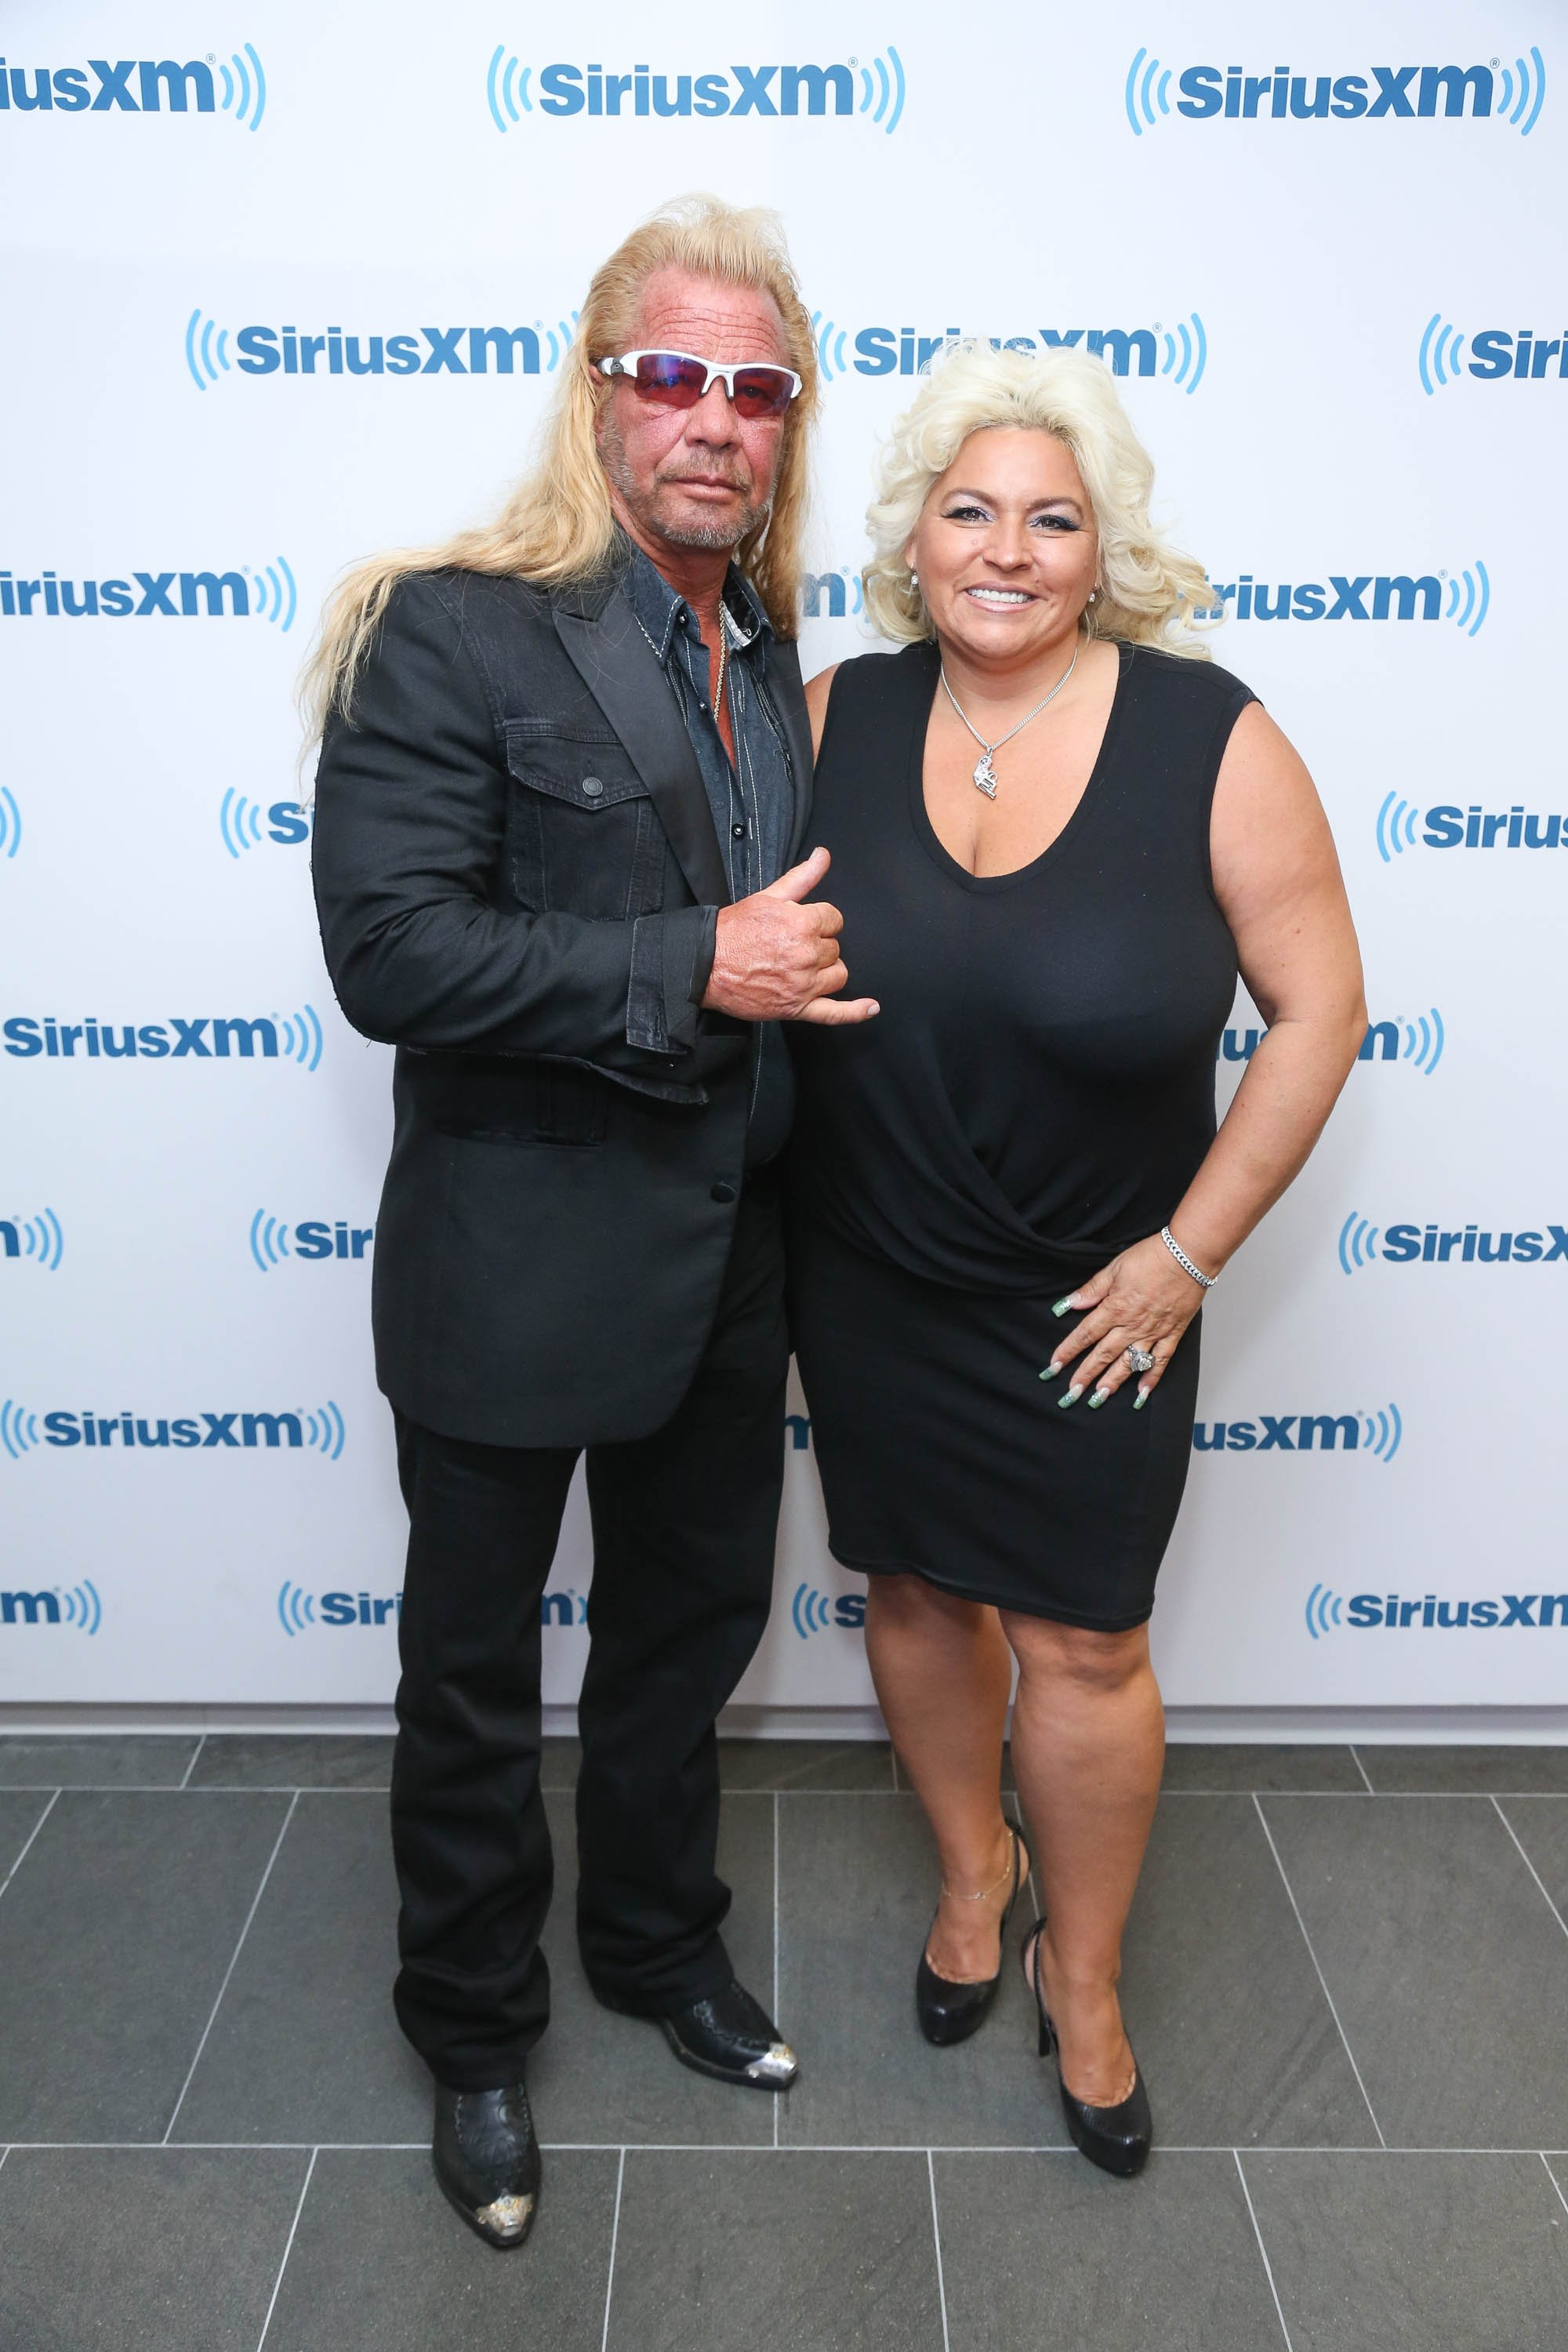 Duane Chapman and Beth Chapman visit SiriusXM Studios in New York City on June 9, 2014 | Photo: Getty Images